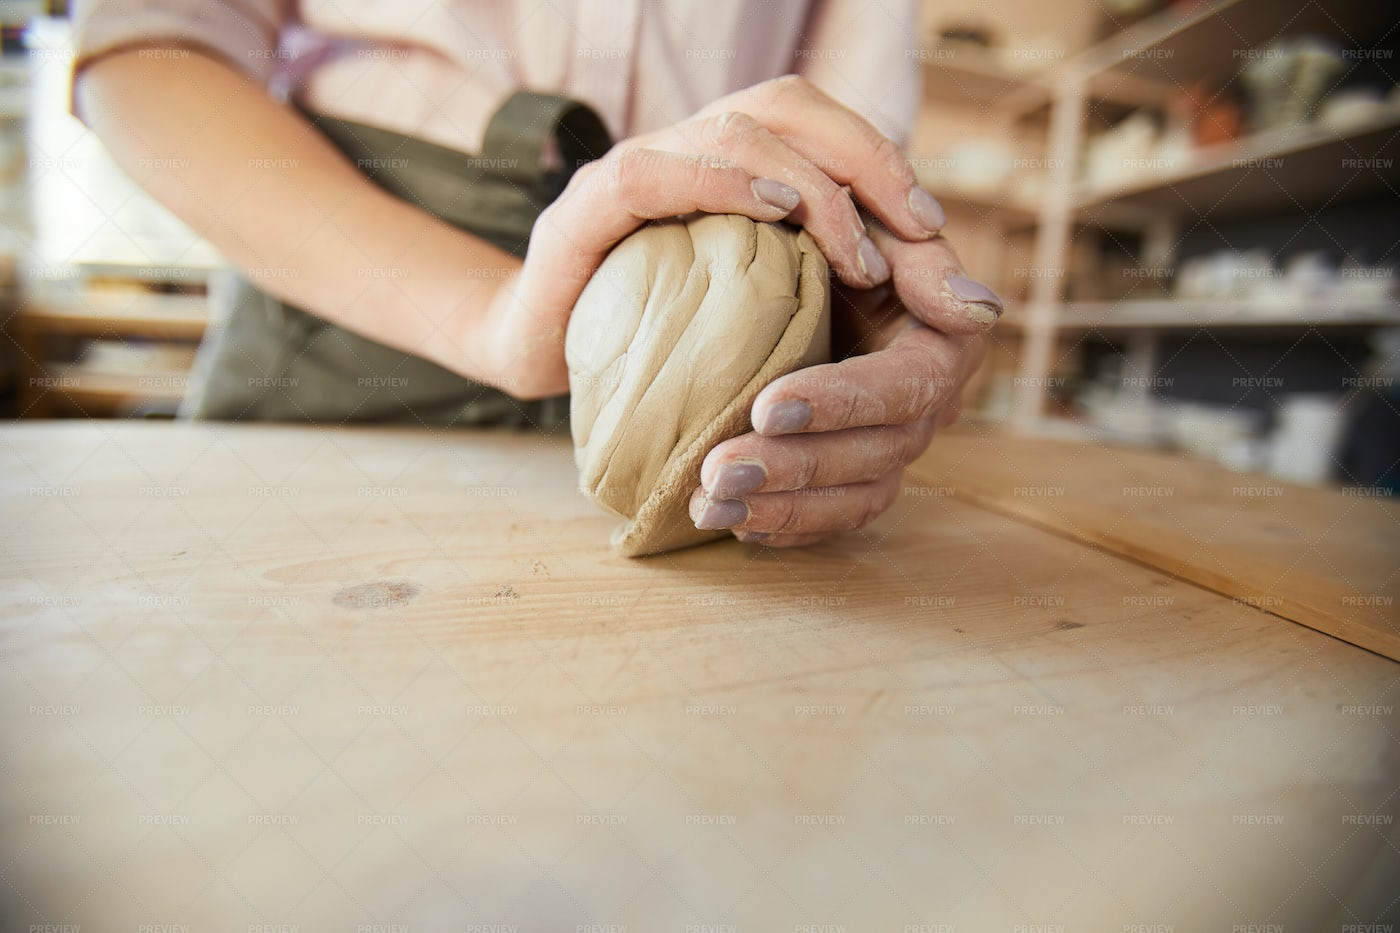 Female Potter Shaping Clay: Stock Photos